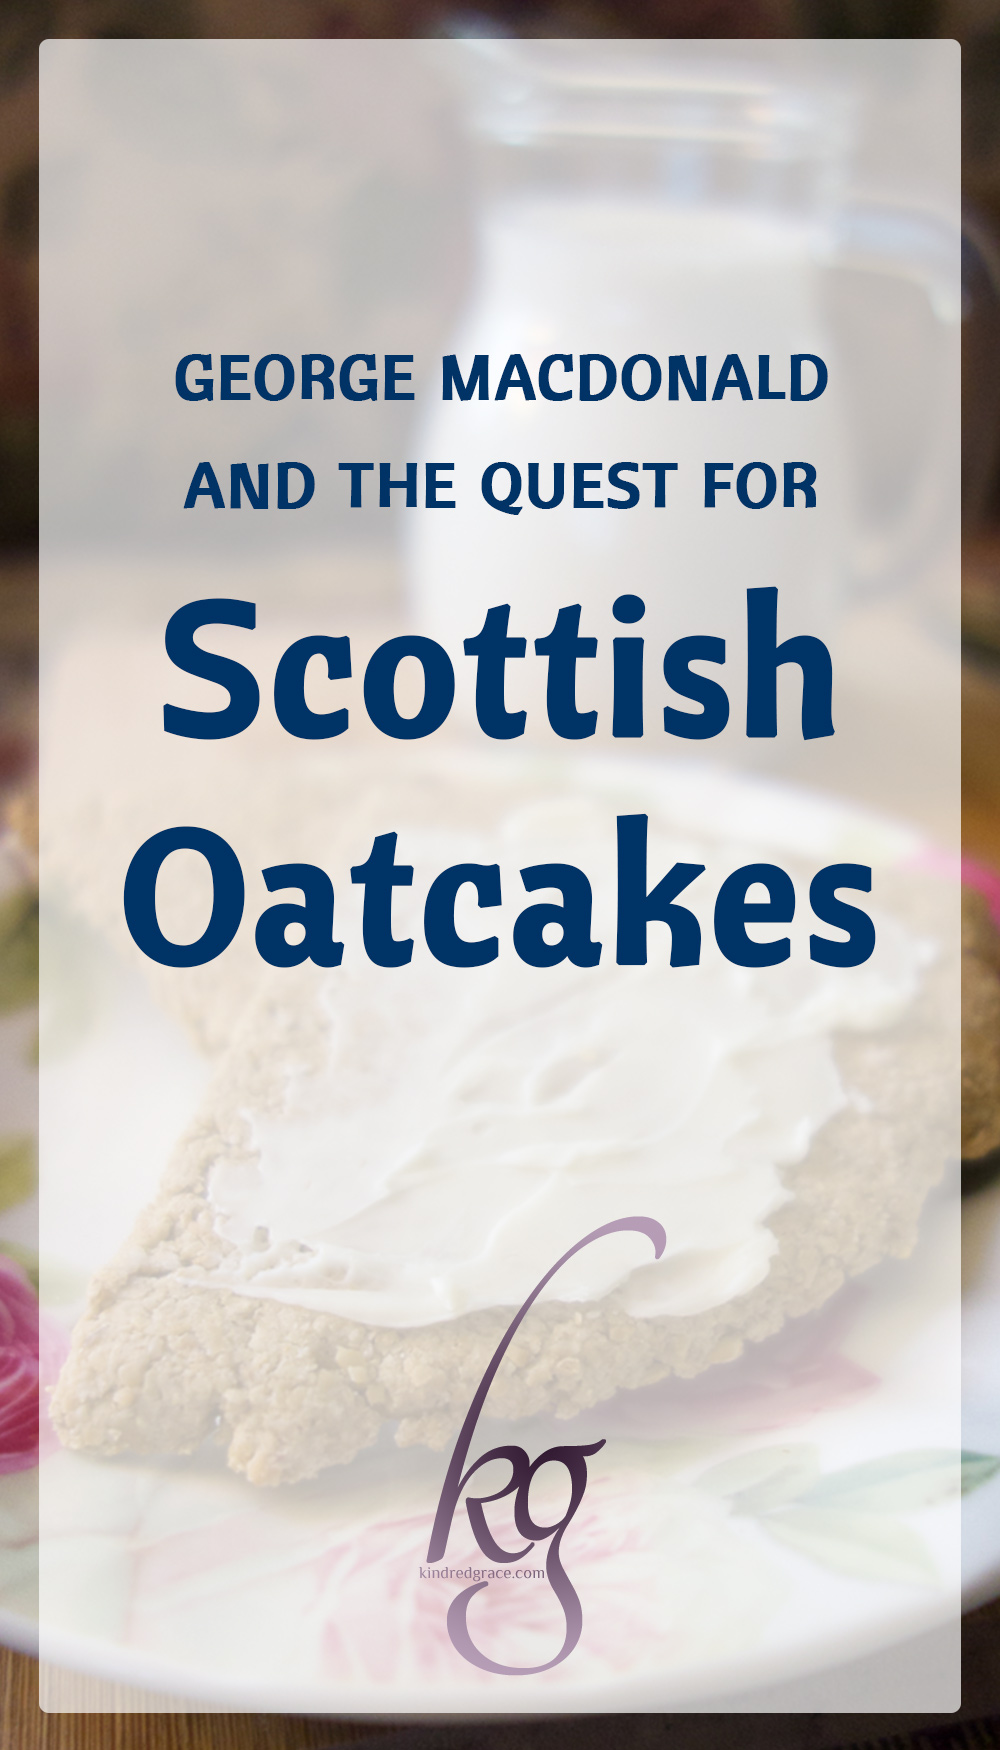 While curled up in my Jerusalem home, vicariously roaming the hills of Scotland in George MacDonald's fiction, I noticed that everyone seemed to be eating oatcakes. Feeling a little jealous and a little hungry, back I went on the hunt for an oatcake recipe... via @KindredGrace